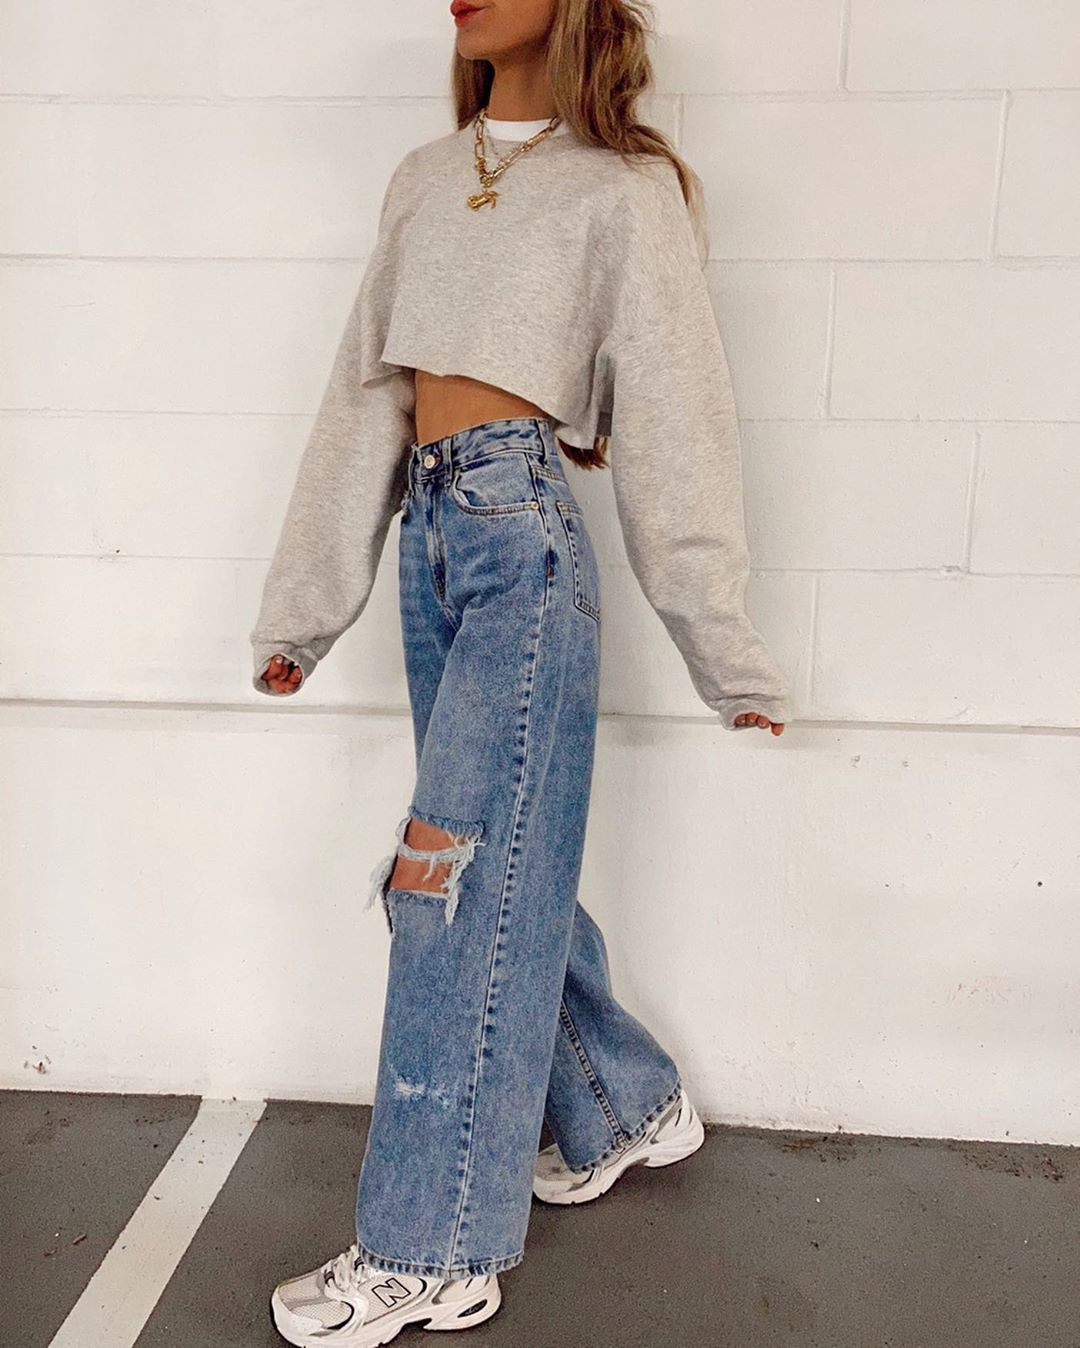 """Photo of Olivia Frost on Instagram: """"Uniform ? happy weekend angels xoxo (jeans linked in my story)"""""""